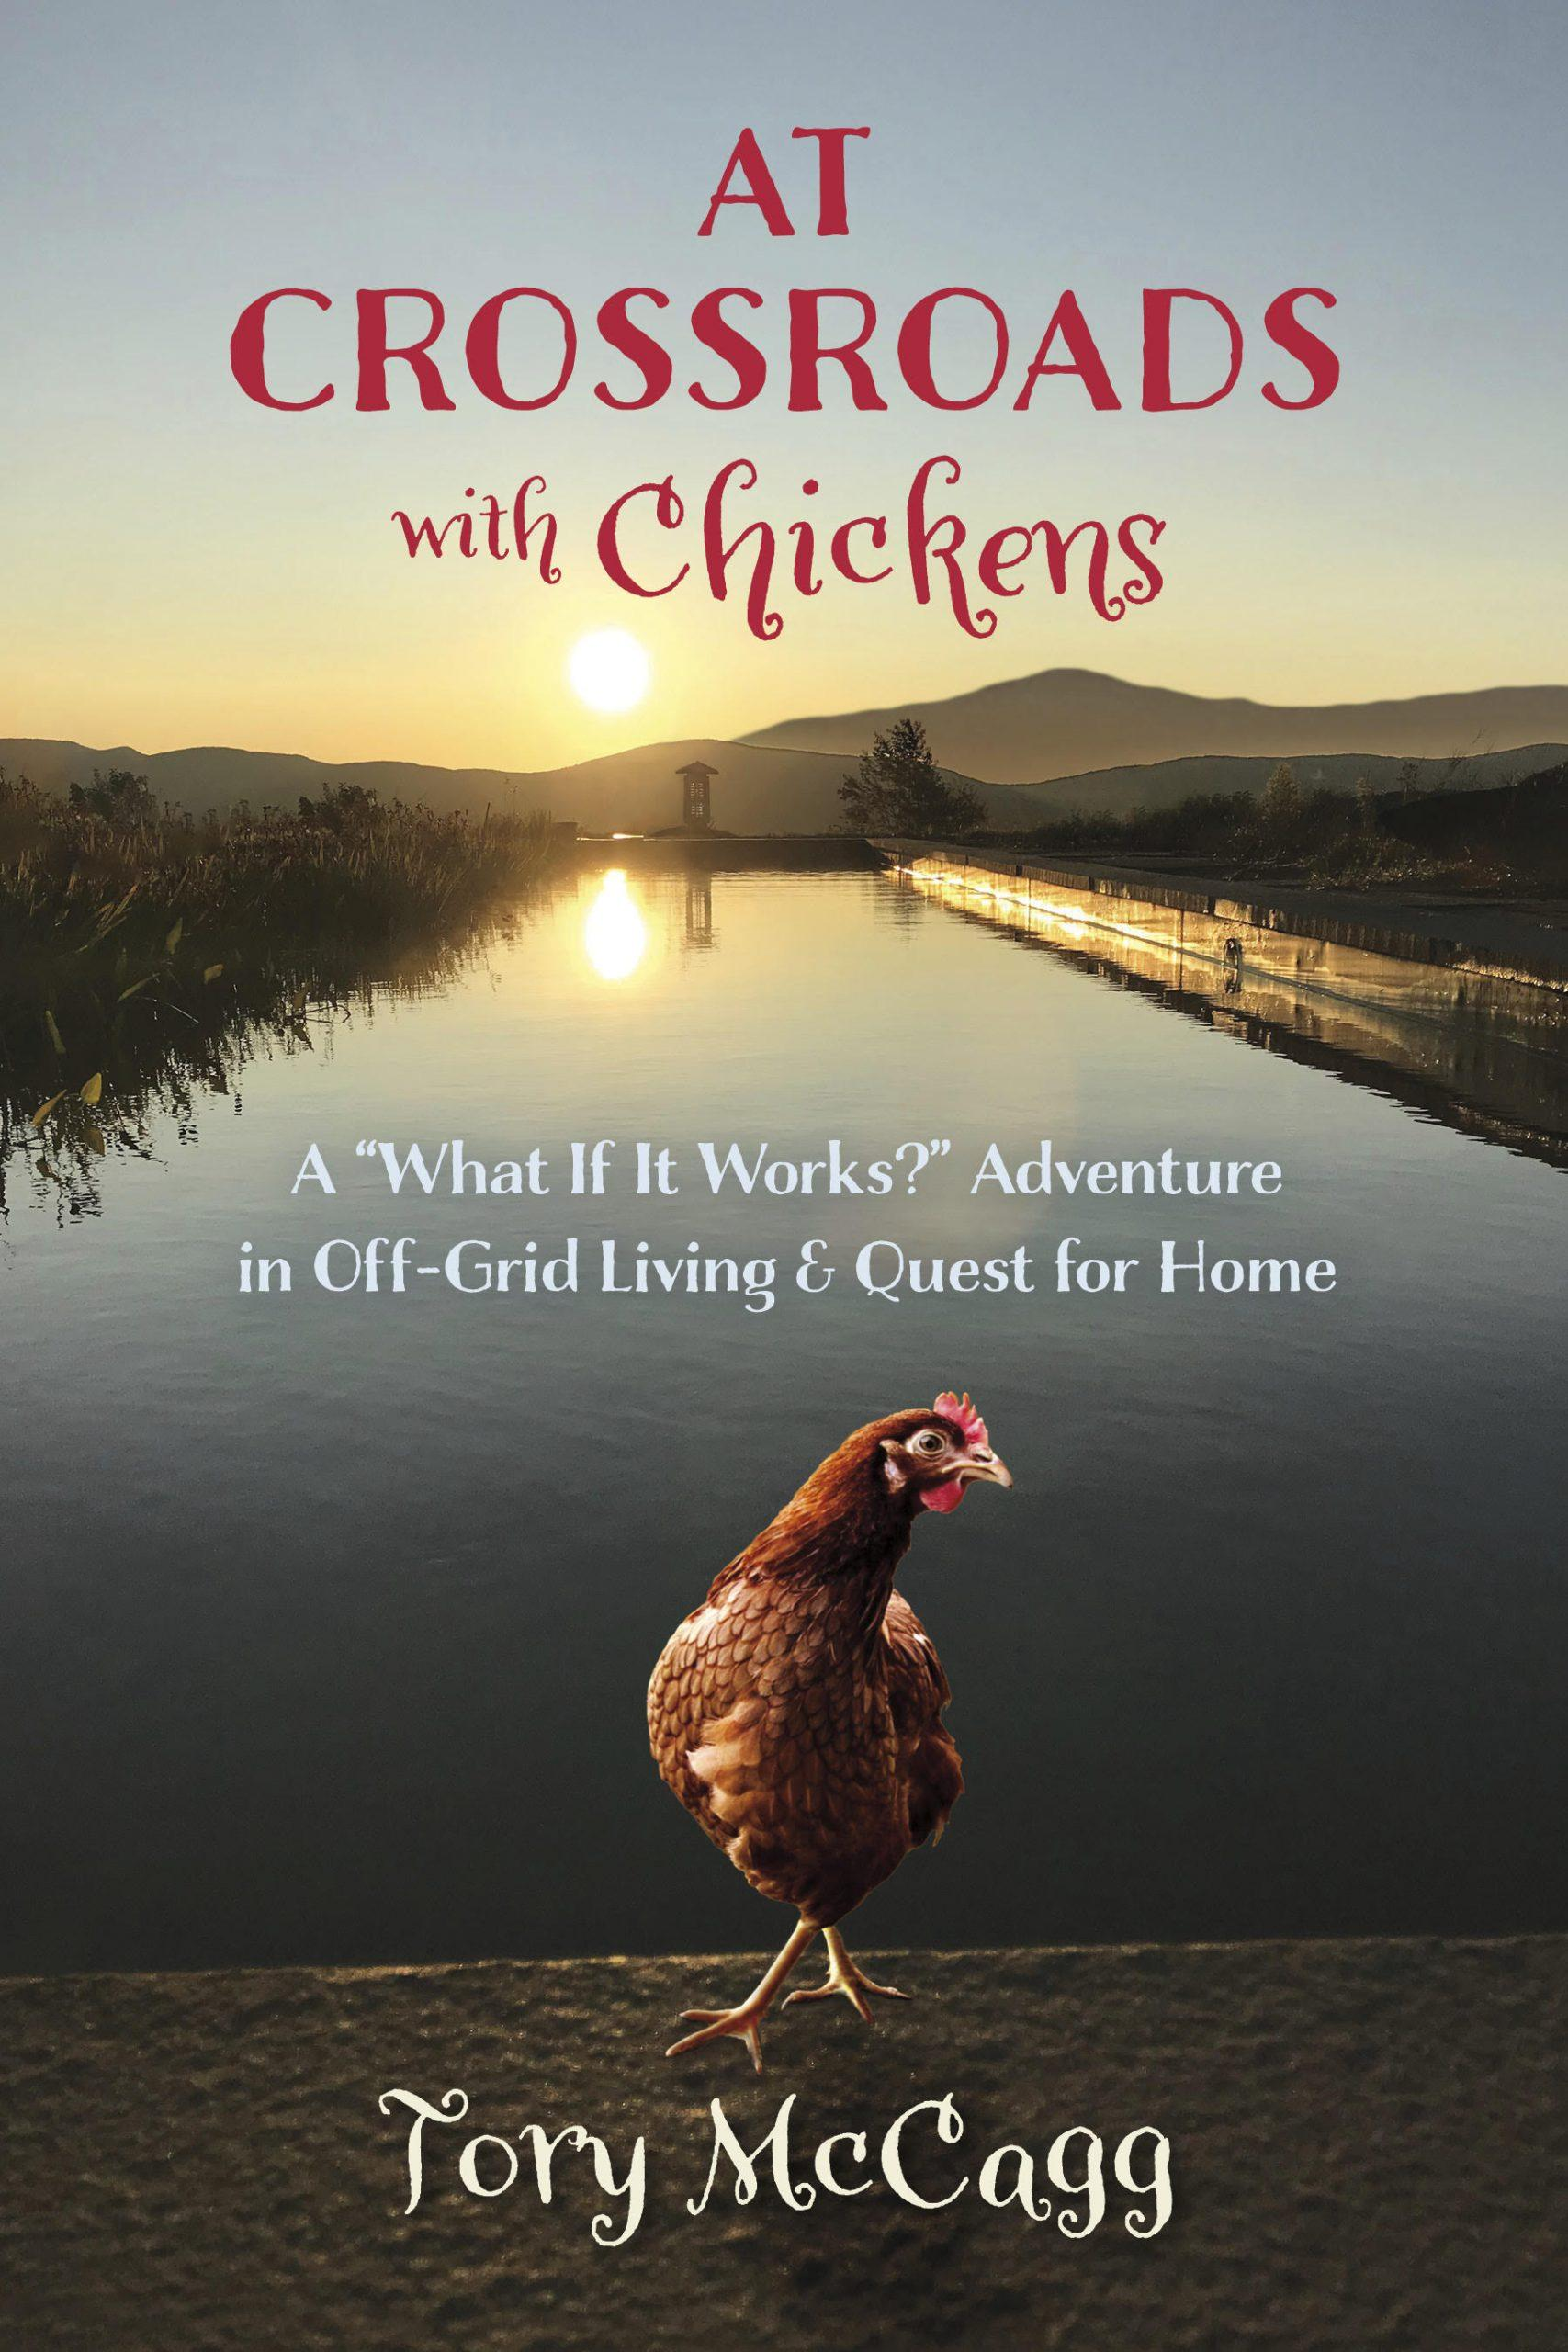 "At Crossroads with Chickens: A ""What If It Works?"" Adventure in Off-Grid Living & Quest for Home by Tory McCagg, $23 @amazon.com"